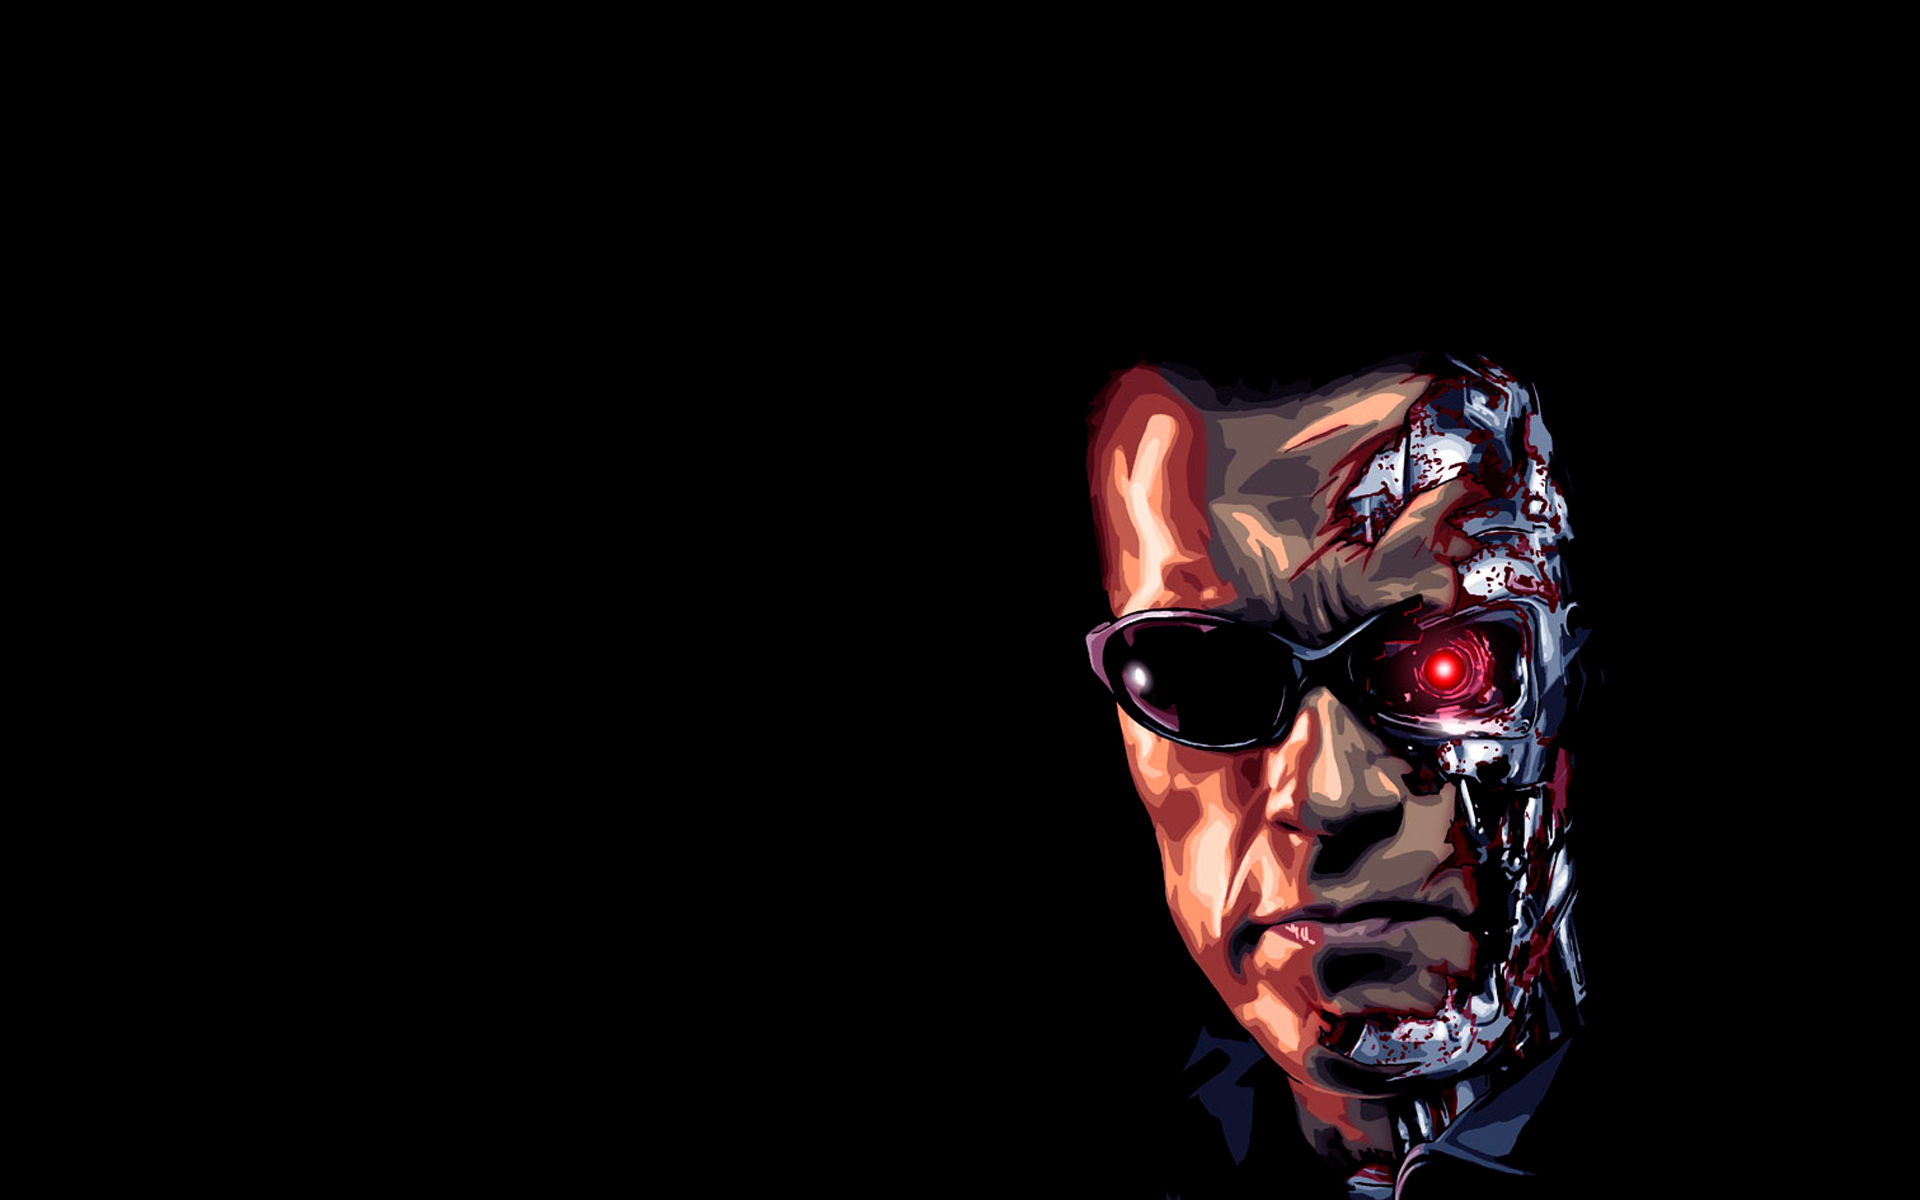 terminator widescreen computer wallpapers skynet Hd widescreen wallpapers of terminator salvation (2009) terminator 4 is a 2009 american science fiction action film directed by mcg the fourth installment in the terminator series, the film is set in 2018 and focuses on the war between skynet and humanity, with the human resistance fighting against skynet's killing.